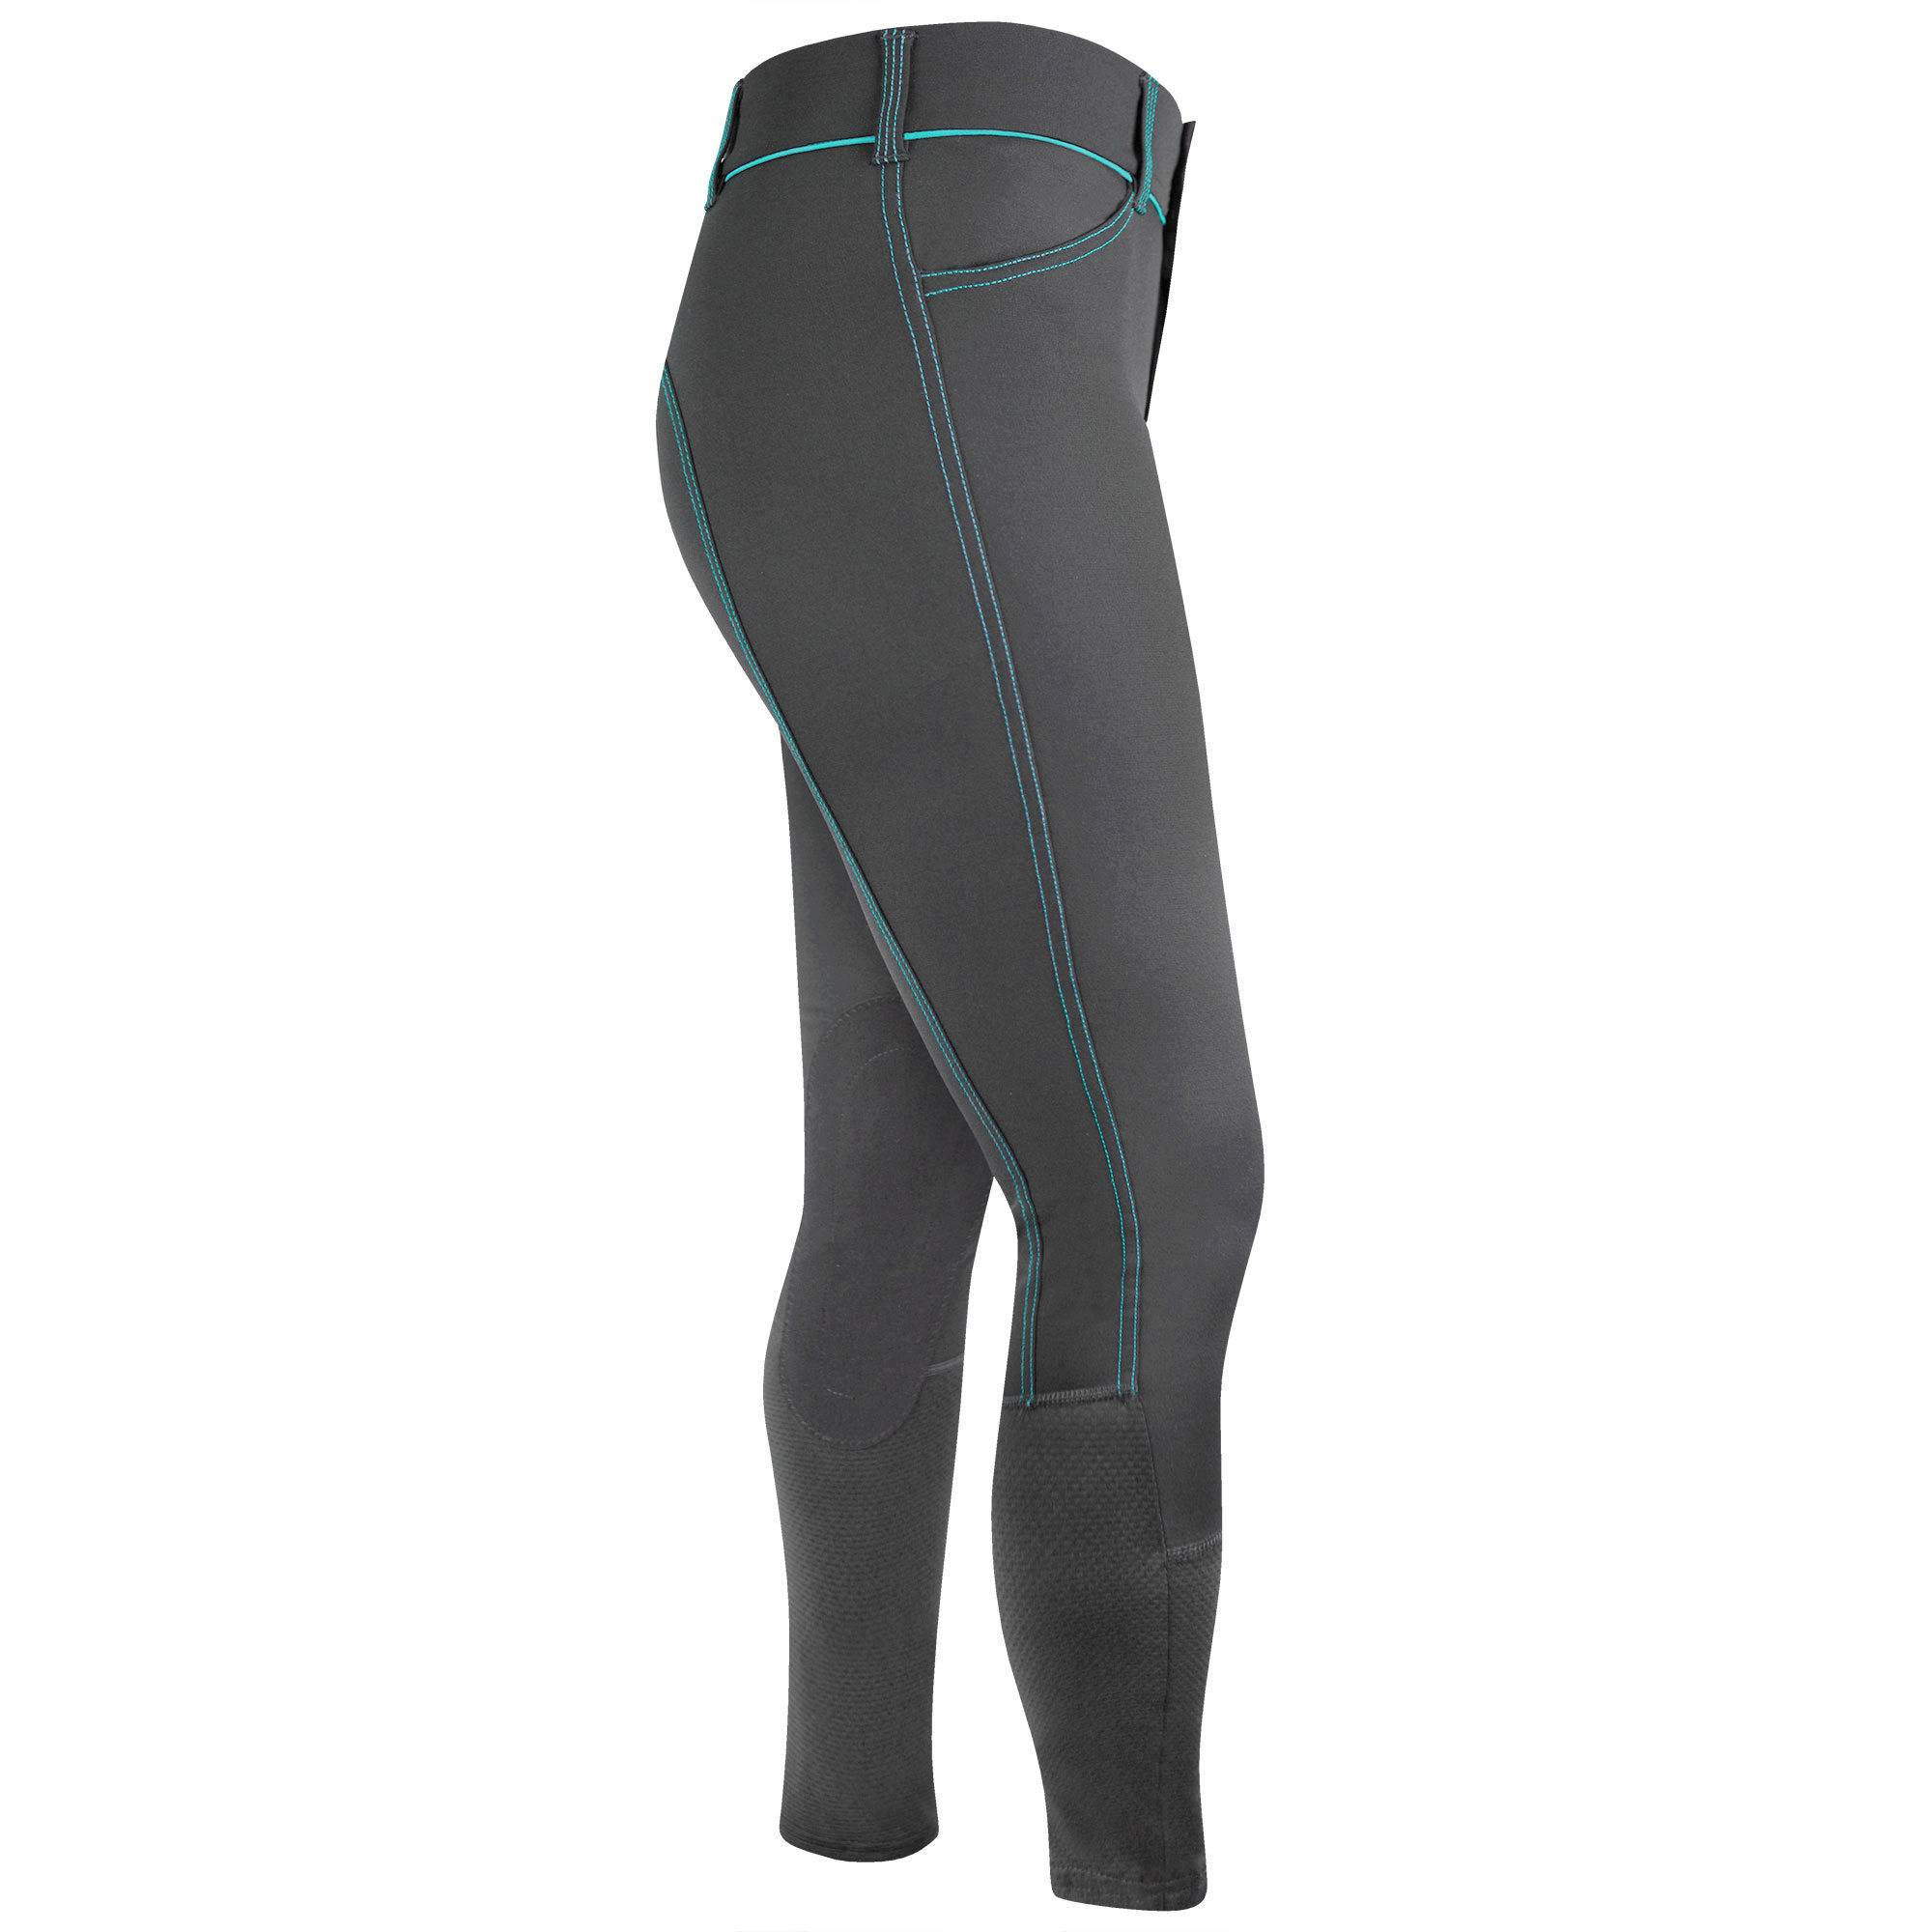 Irideon Zanzibar Breeches - Ladies, Knee Patch